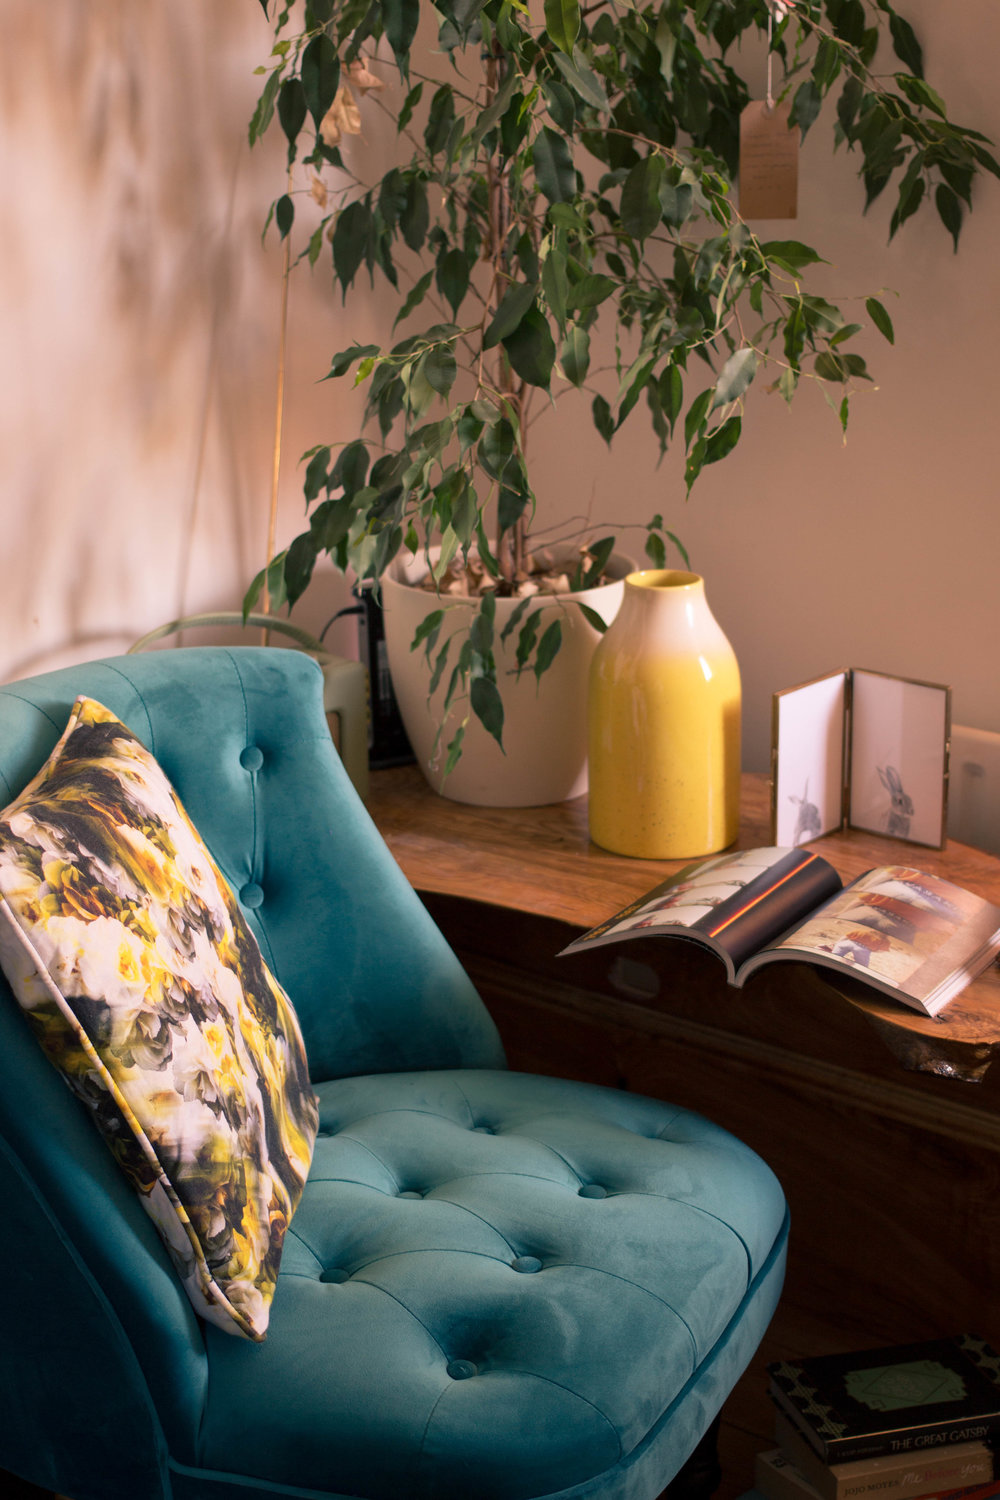 Styling-a-cosy-corner-rush-and-teal-7.jpg